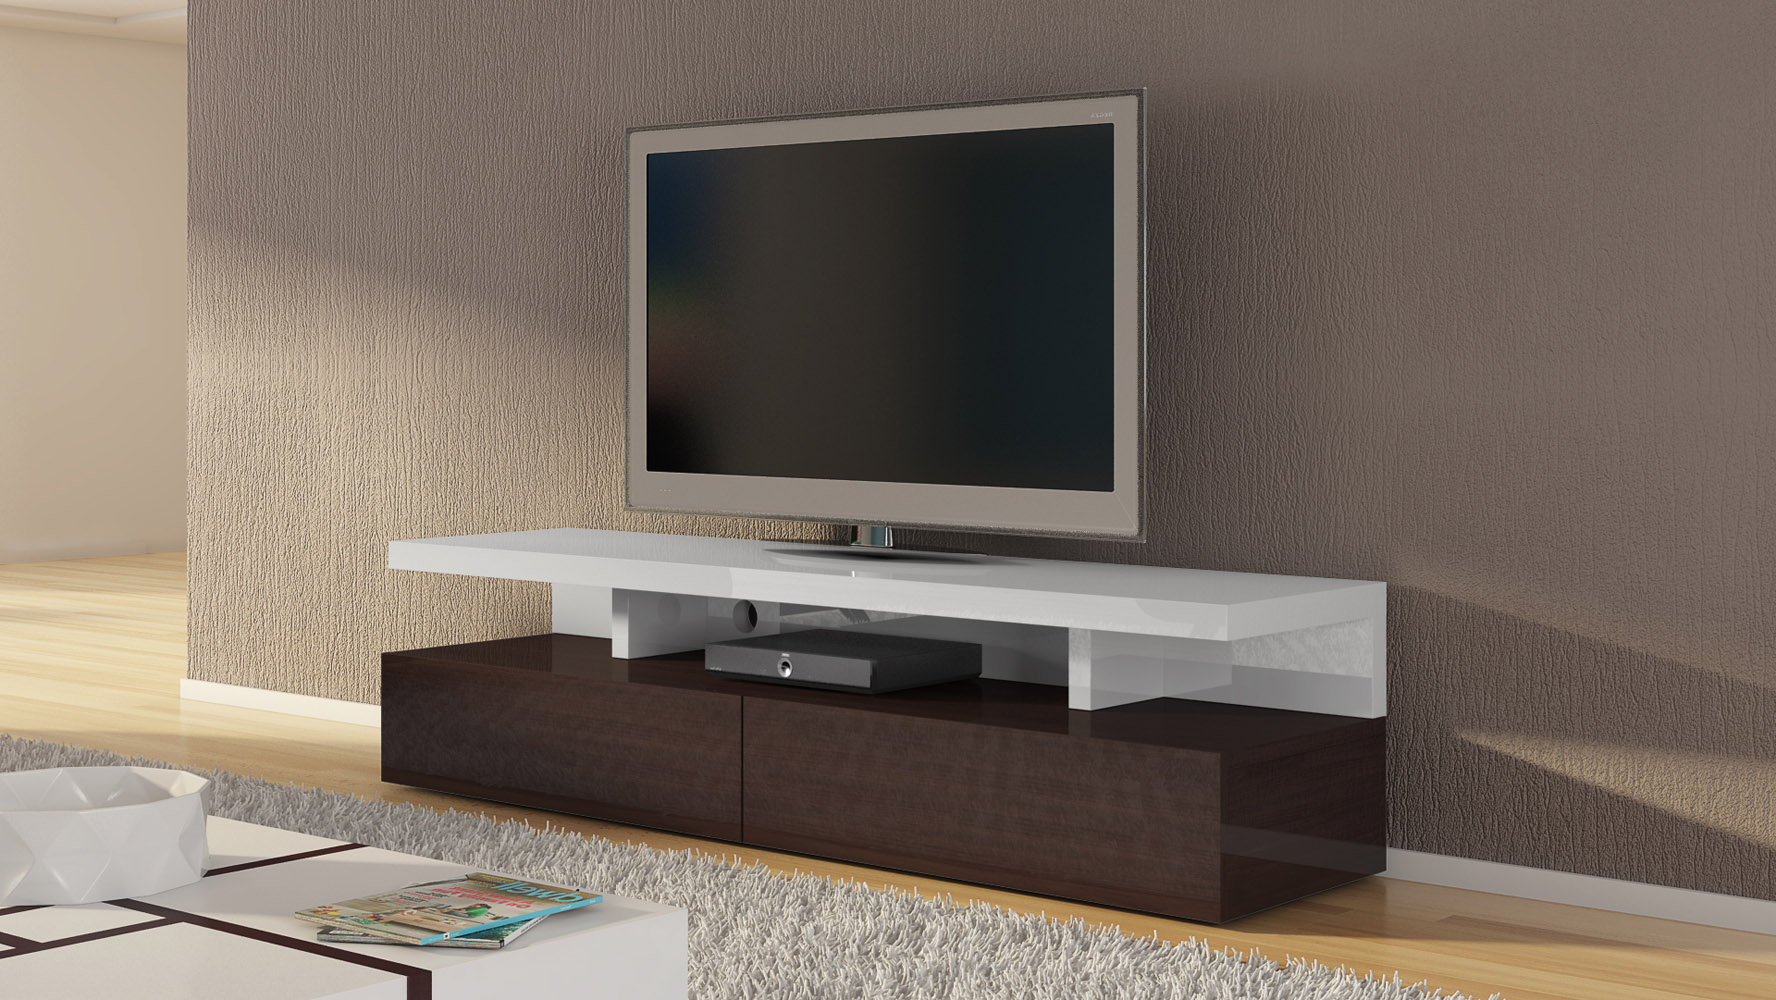 Tv Stands With 2 Open Shelves 2 Drawers High Gloss Tv Unis Regarding Well Liked Mcintosh 71 Inch Tv Stand In White High Gloss And Ebony (View 3 of 10)